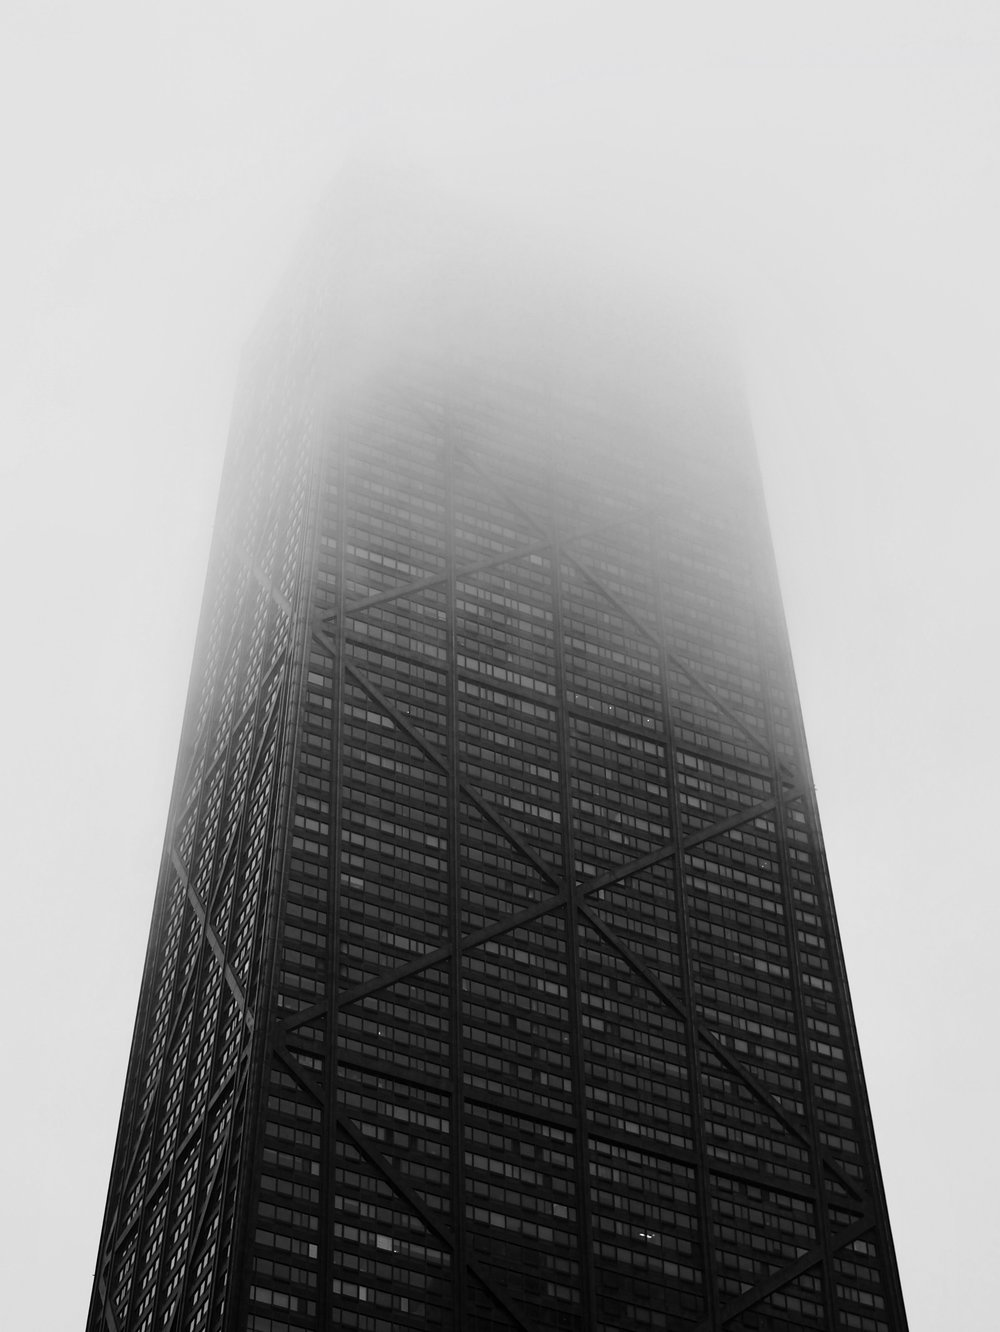 Hancock, Chicago, 1/12/2017